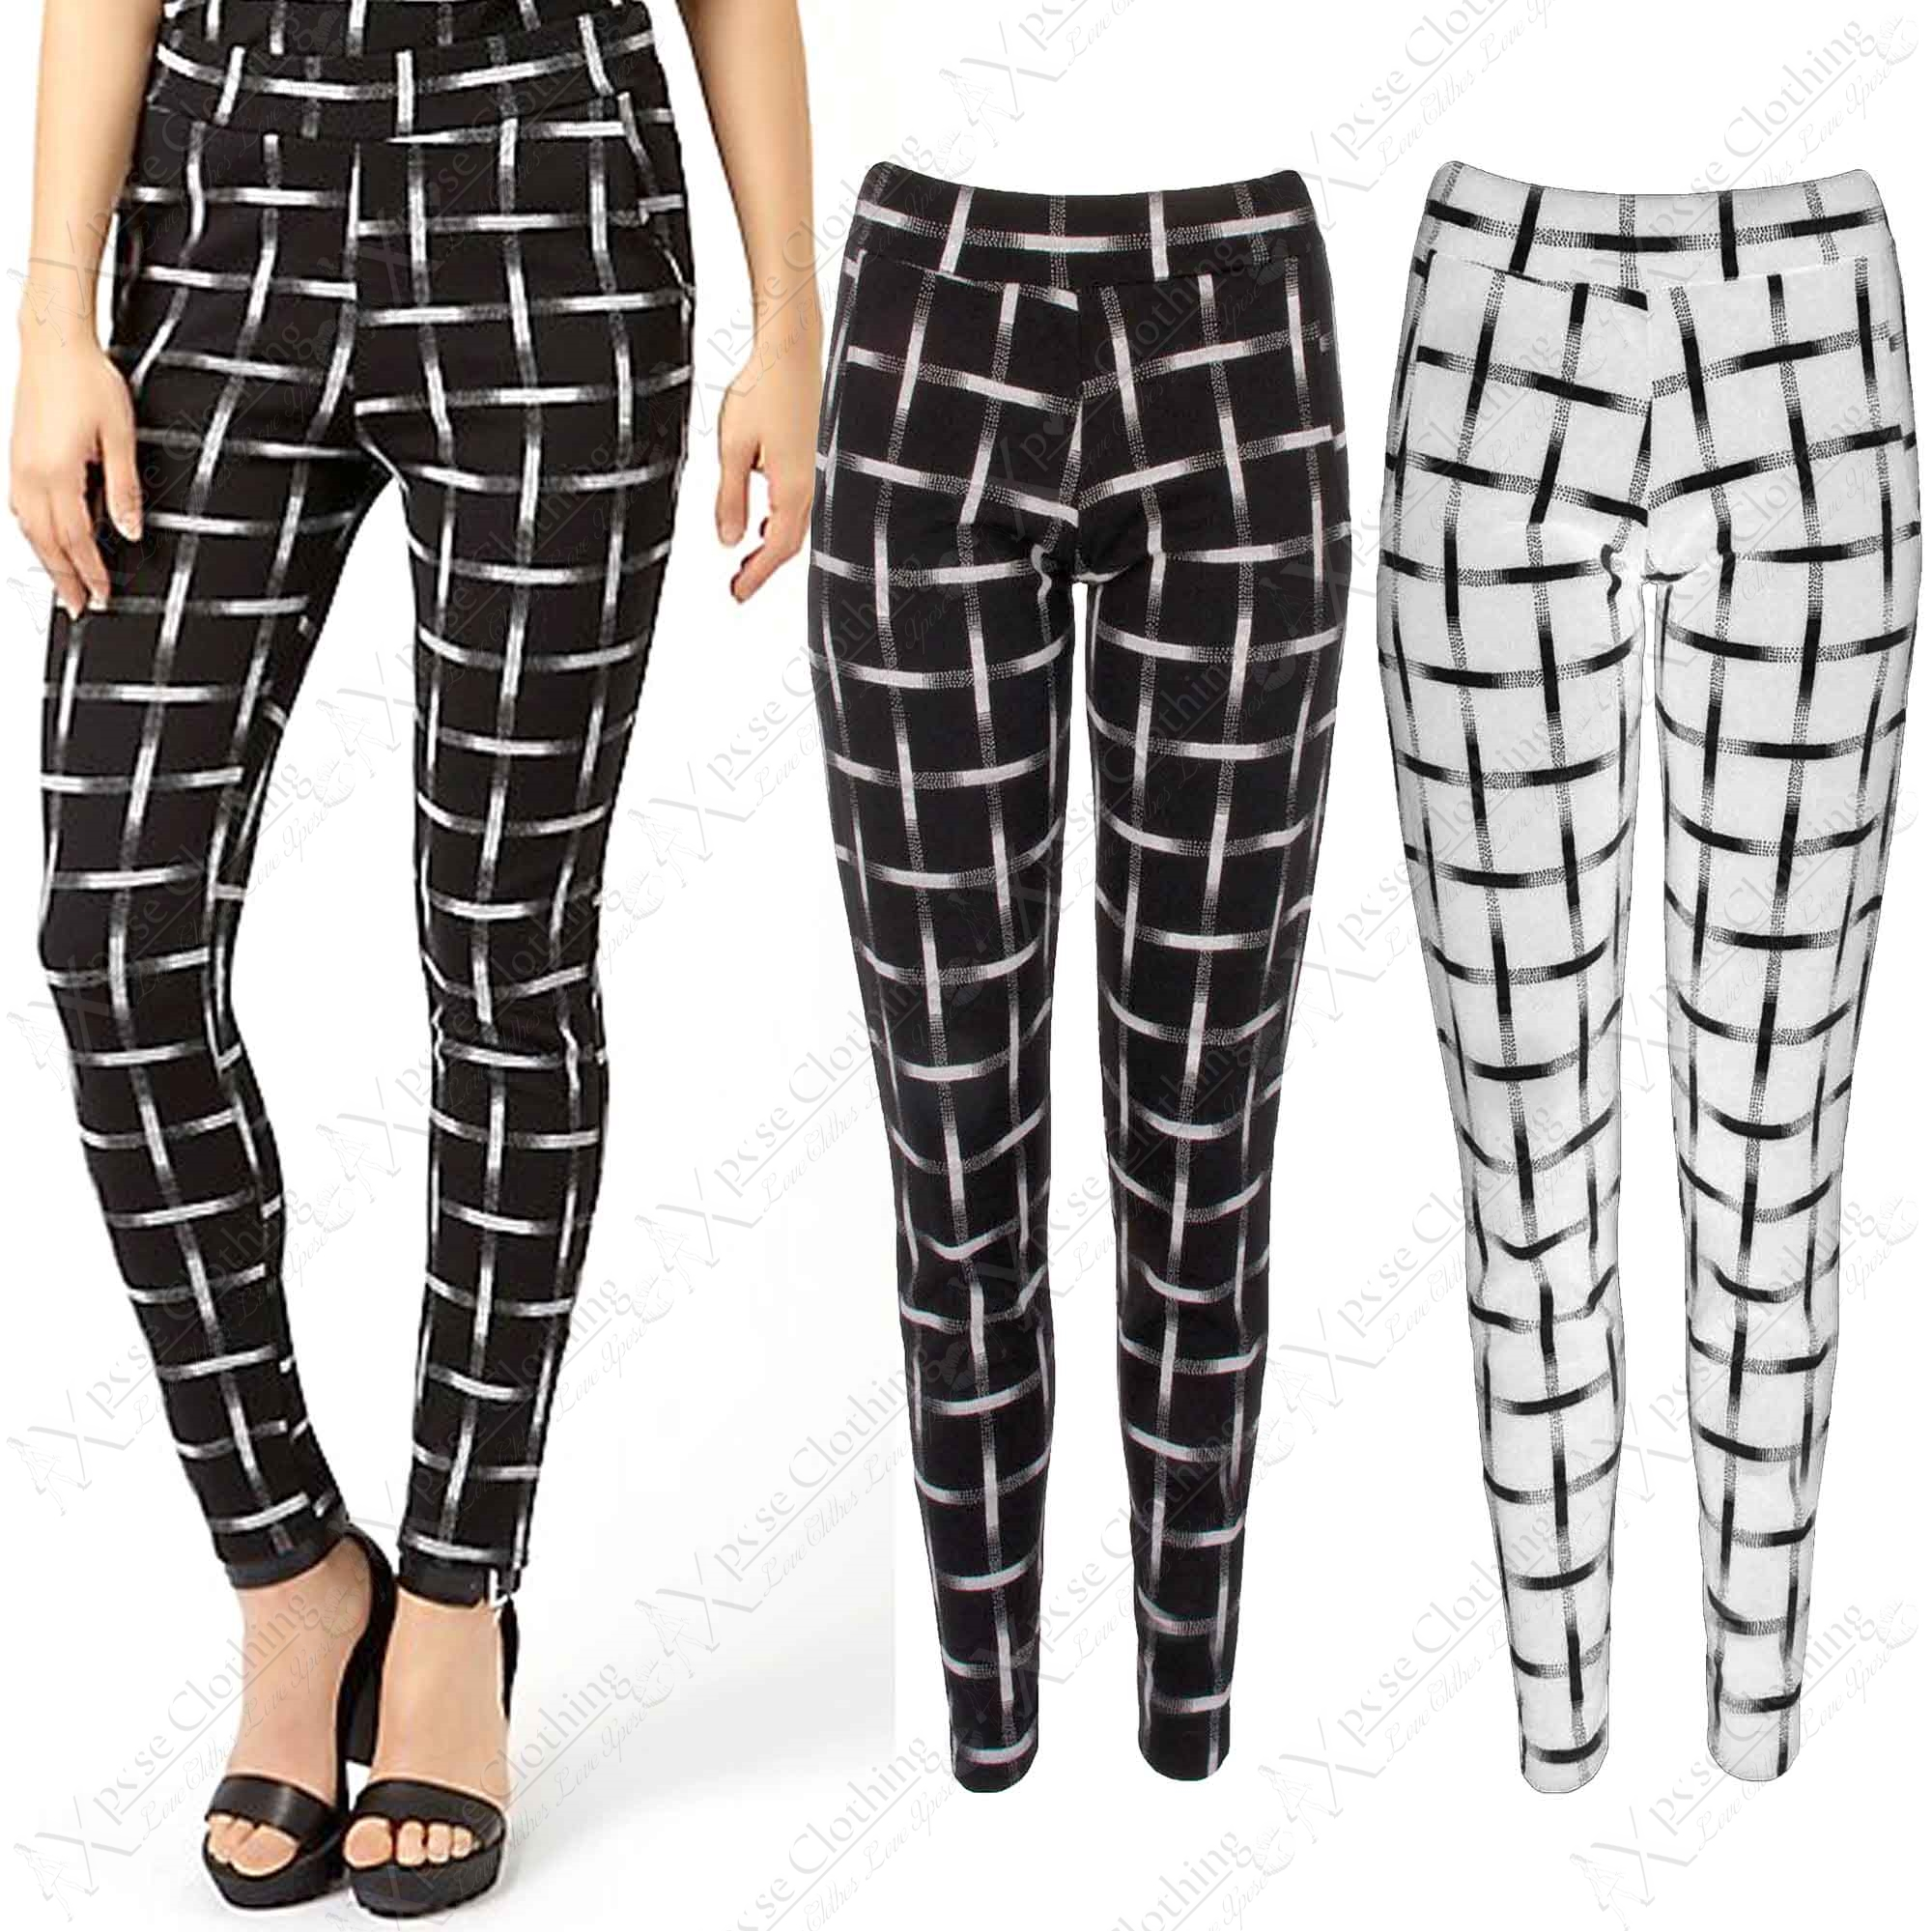 Stay one step ahead of the fashion curve with the slick and sharp cigarette pants. Our crazy hot collection of eternally chic cigarette pants will take you from day through to night for desk to disco ballin' looking as effortless as an off duty model.